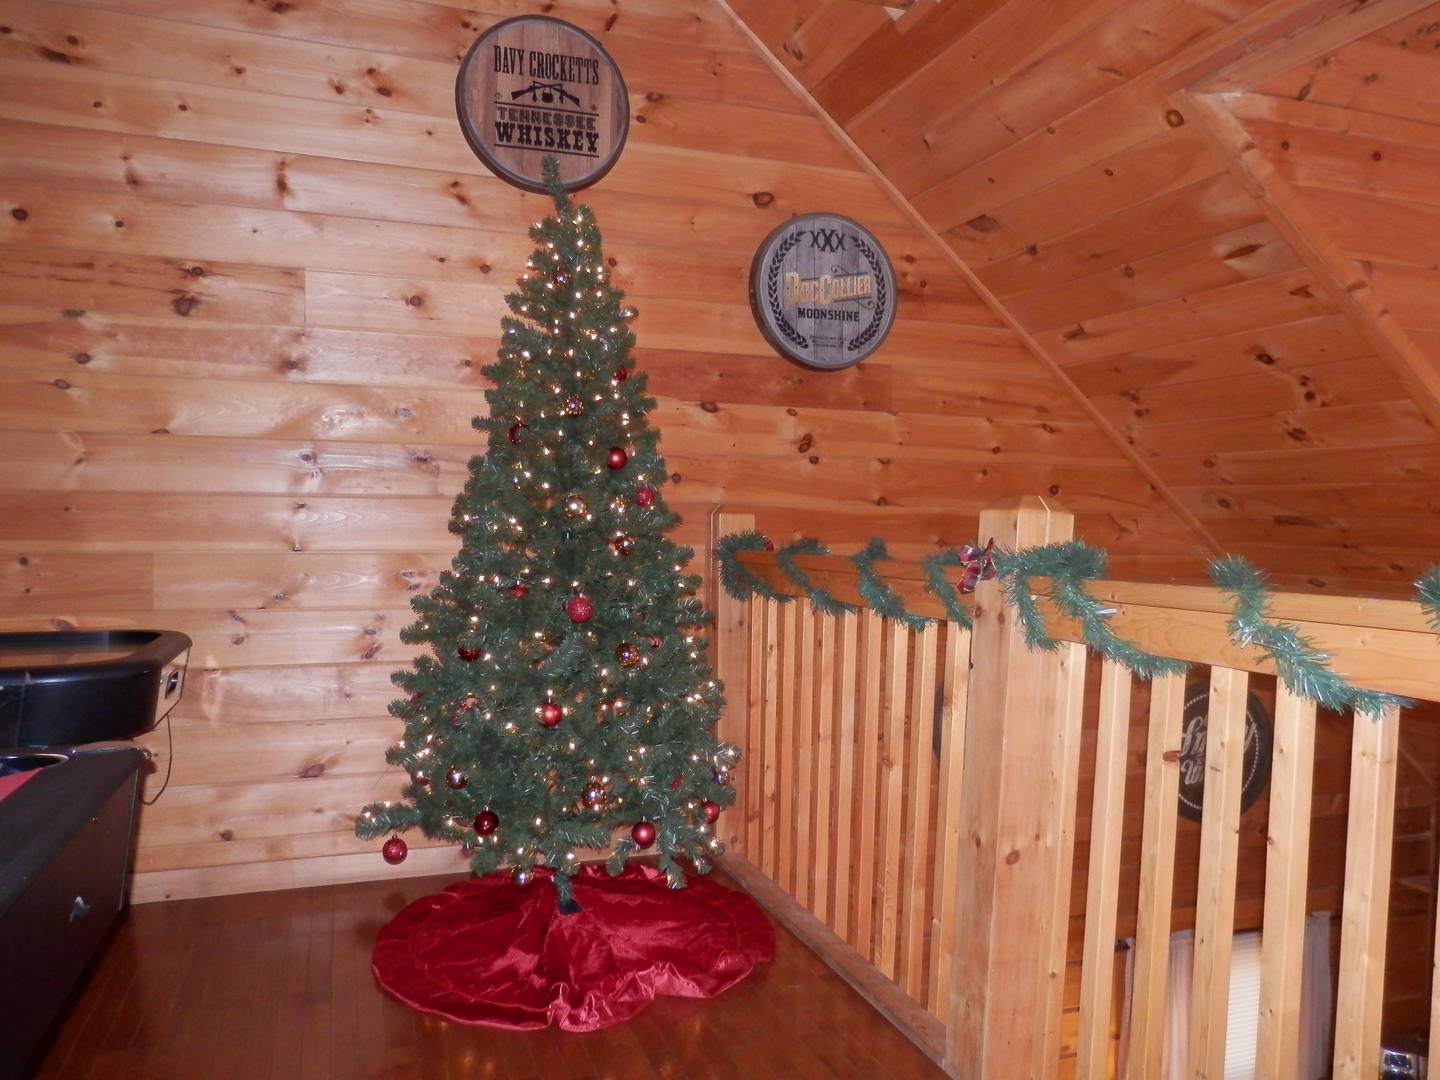 Cabins in gatlinburg tn decorated for christmas - Amenities